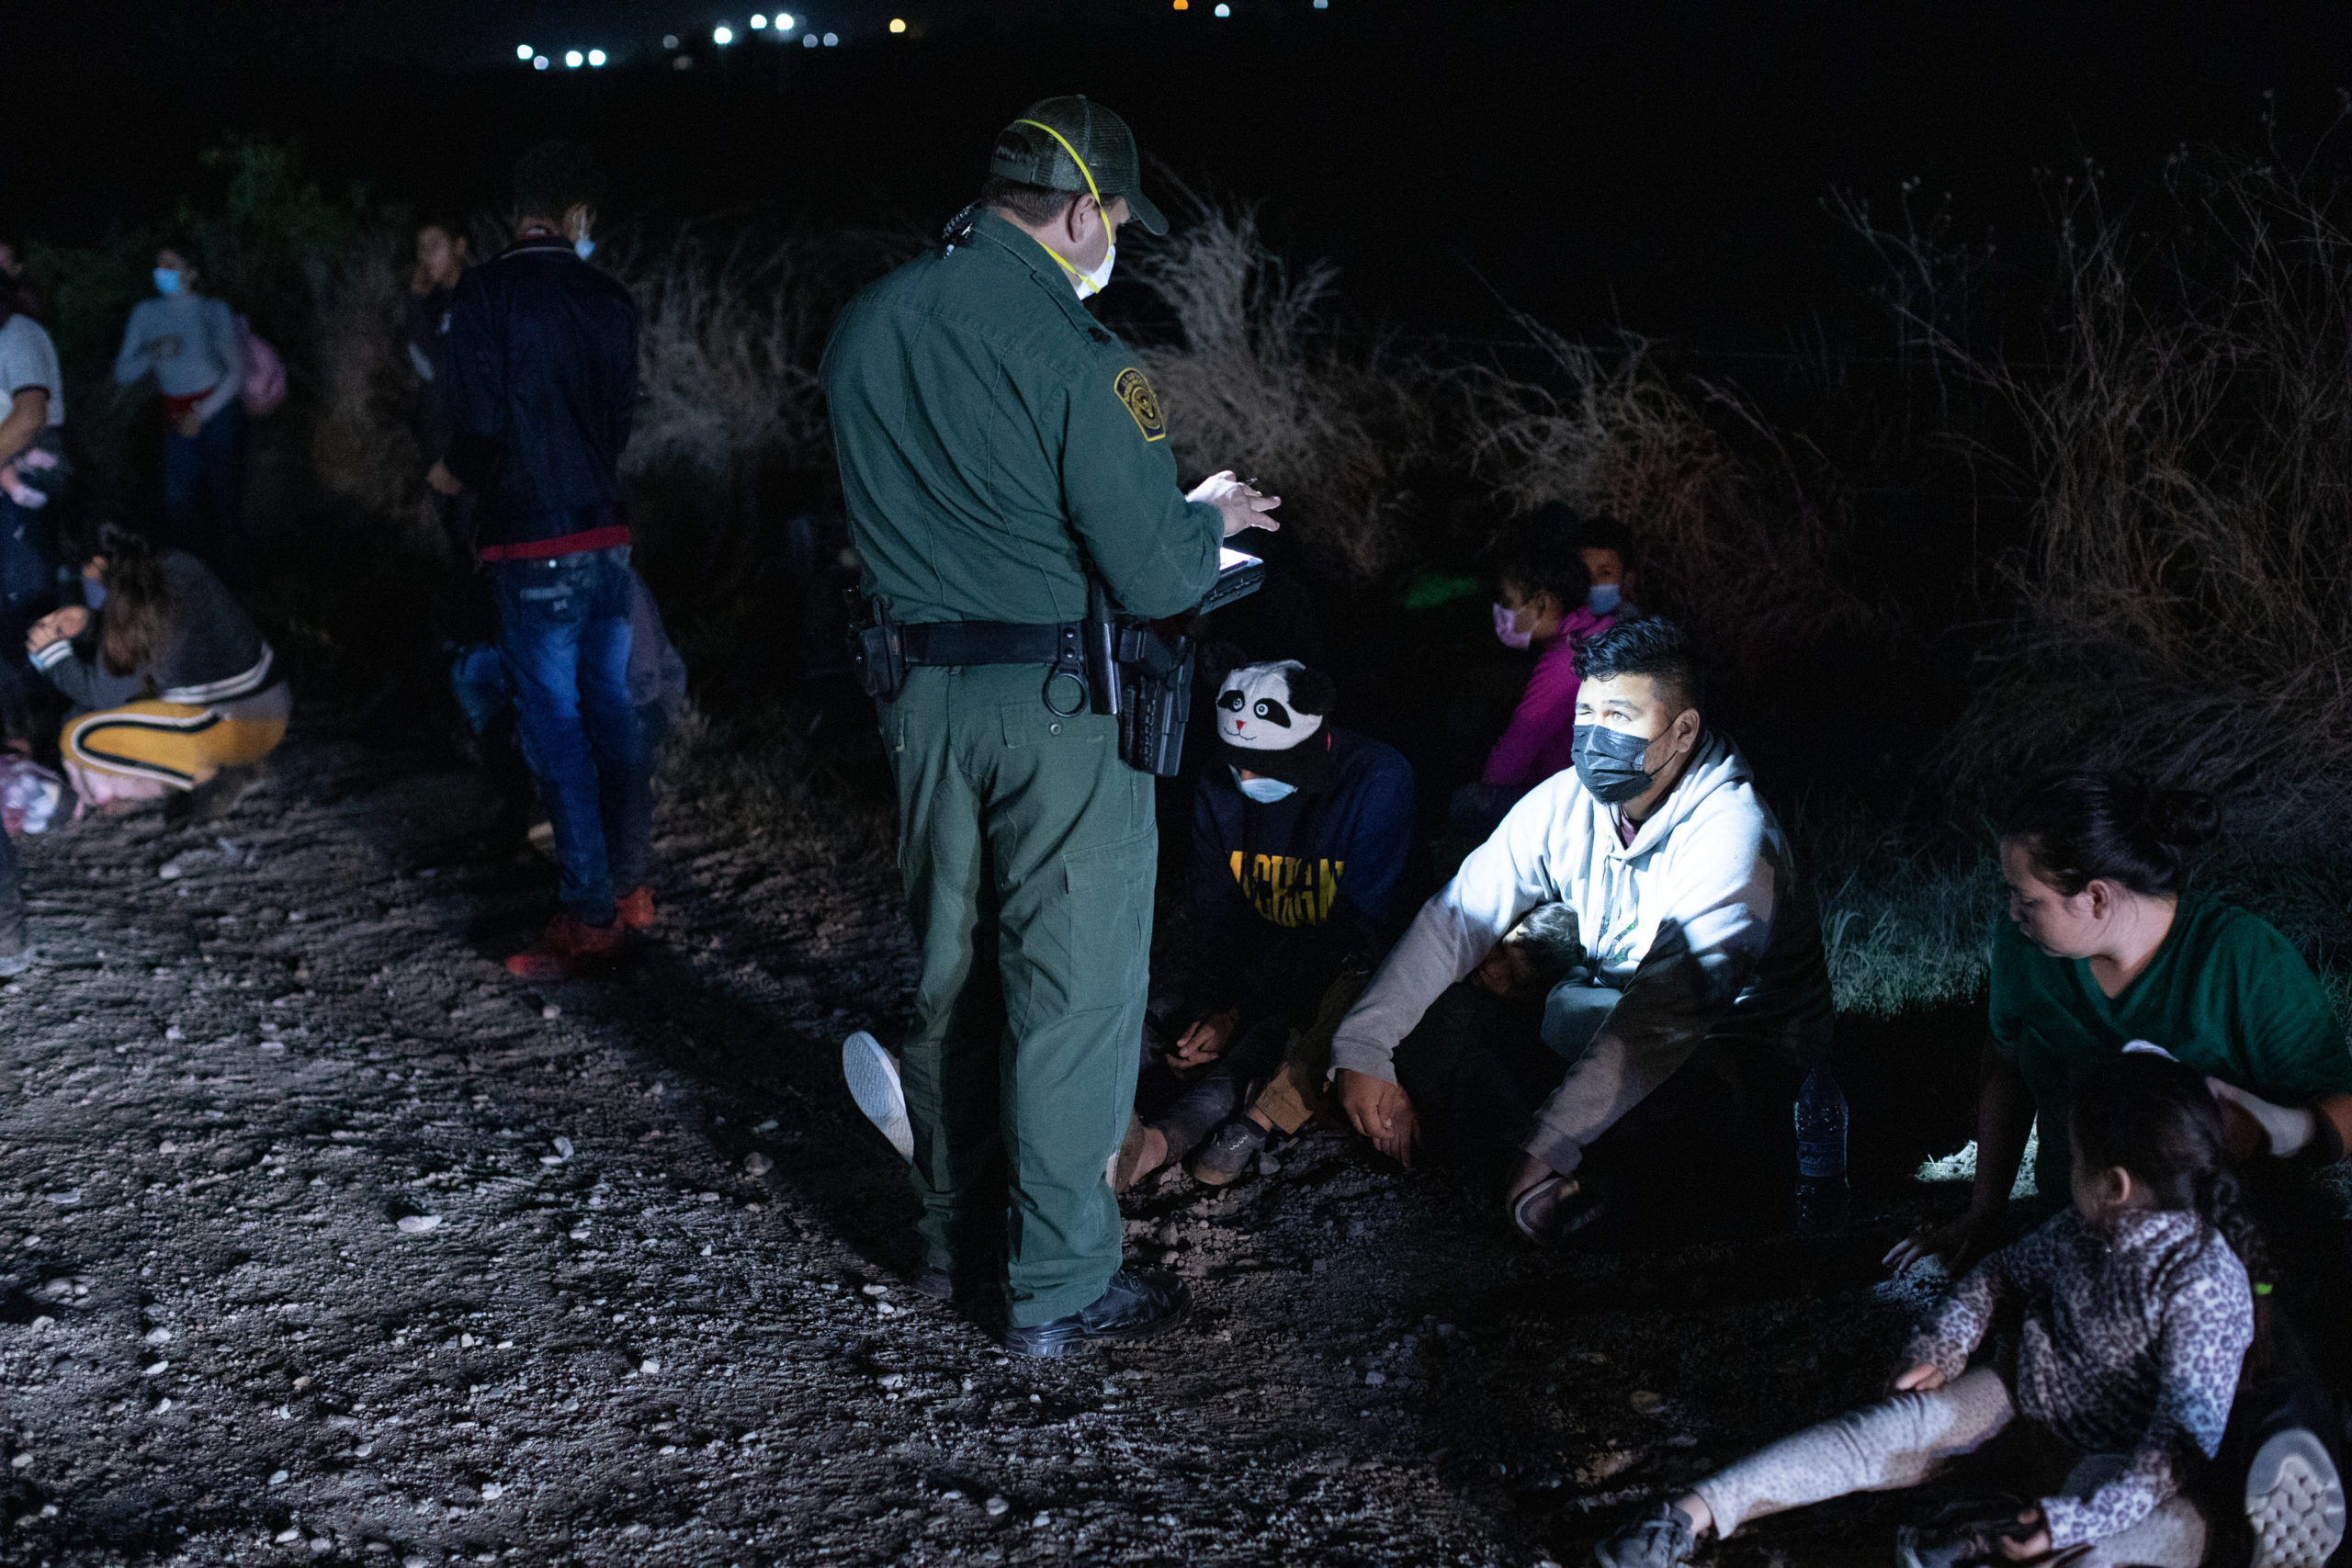 Customs and Border Protection officials work on processing groups of migrants arriving illegally in the U.S. in the middle of the night on March 26, near La Joya, Texas. (Kaylee Greenlee - Daily Caller News Foundation)